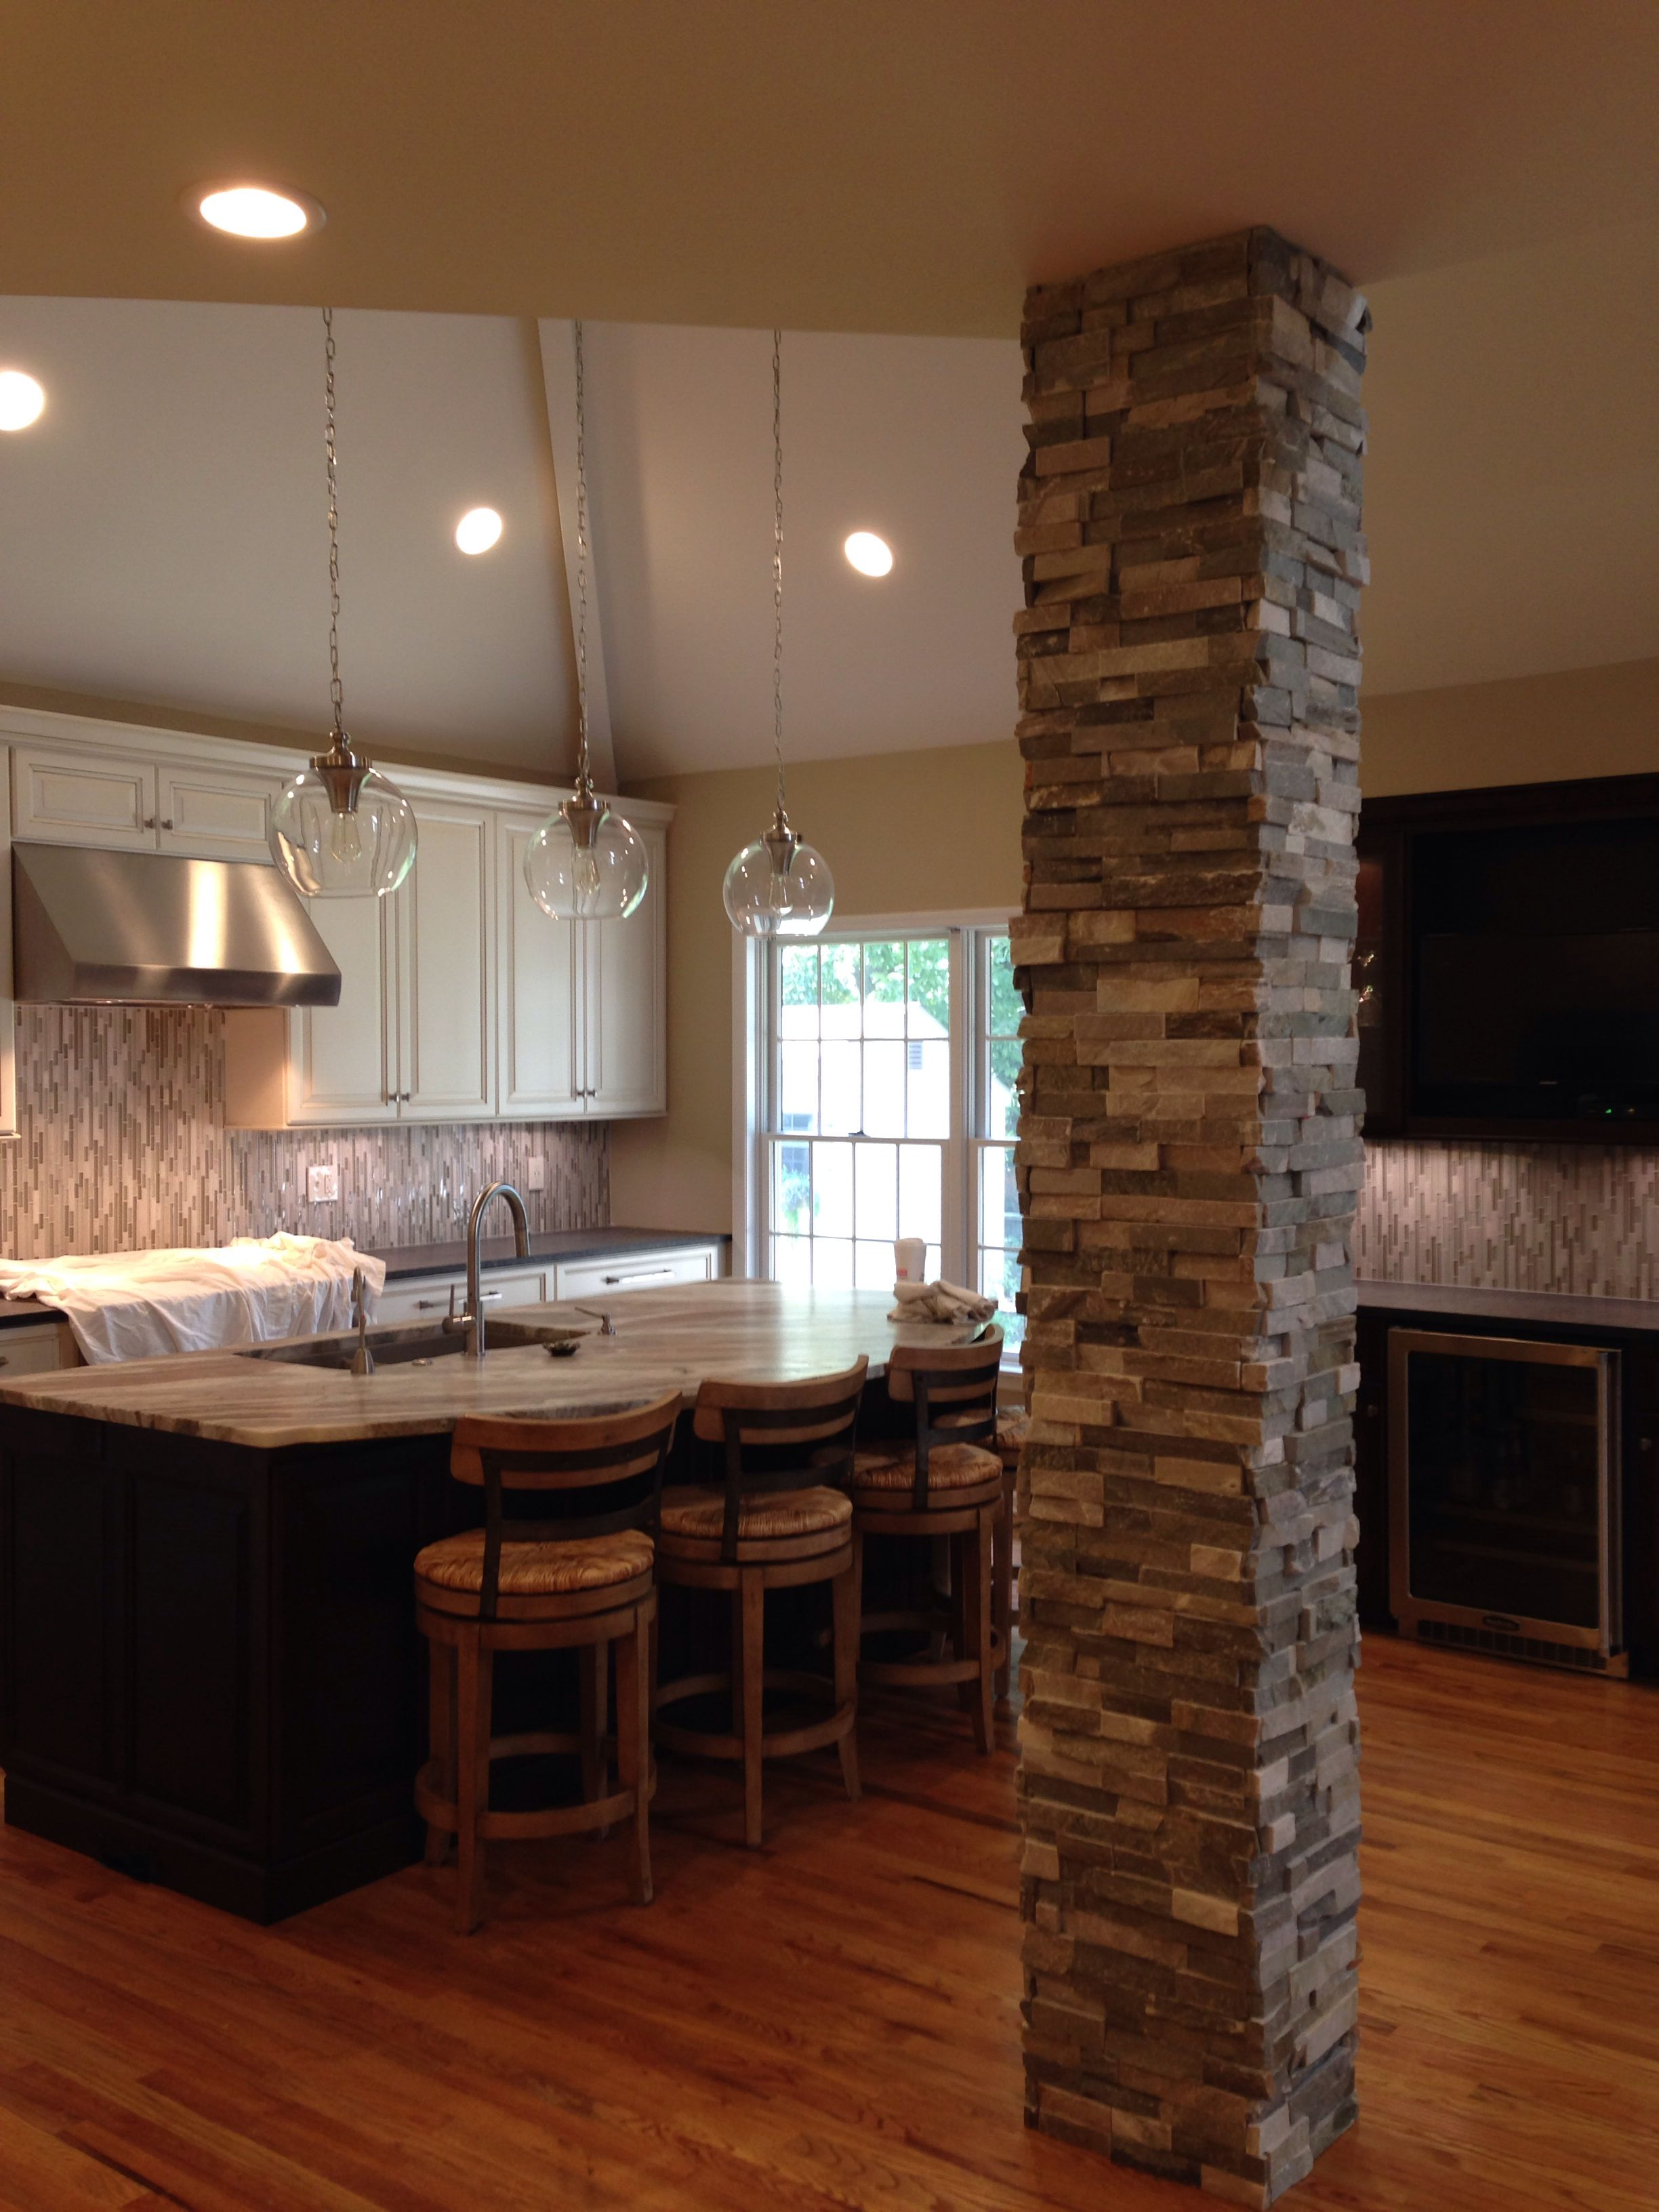 Nice Backsplash With The Column Done In The Front With